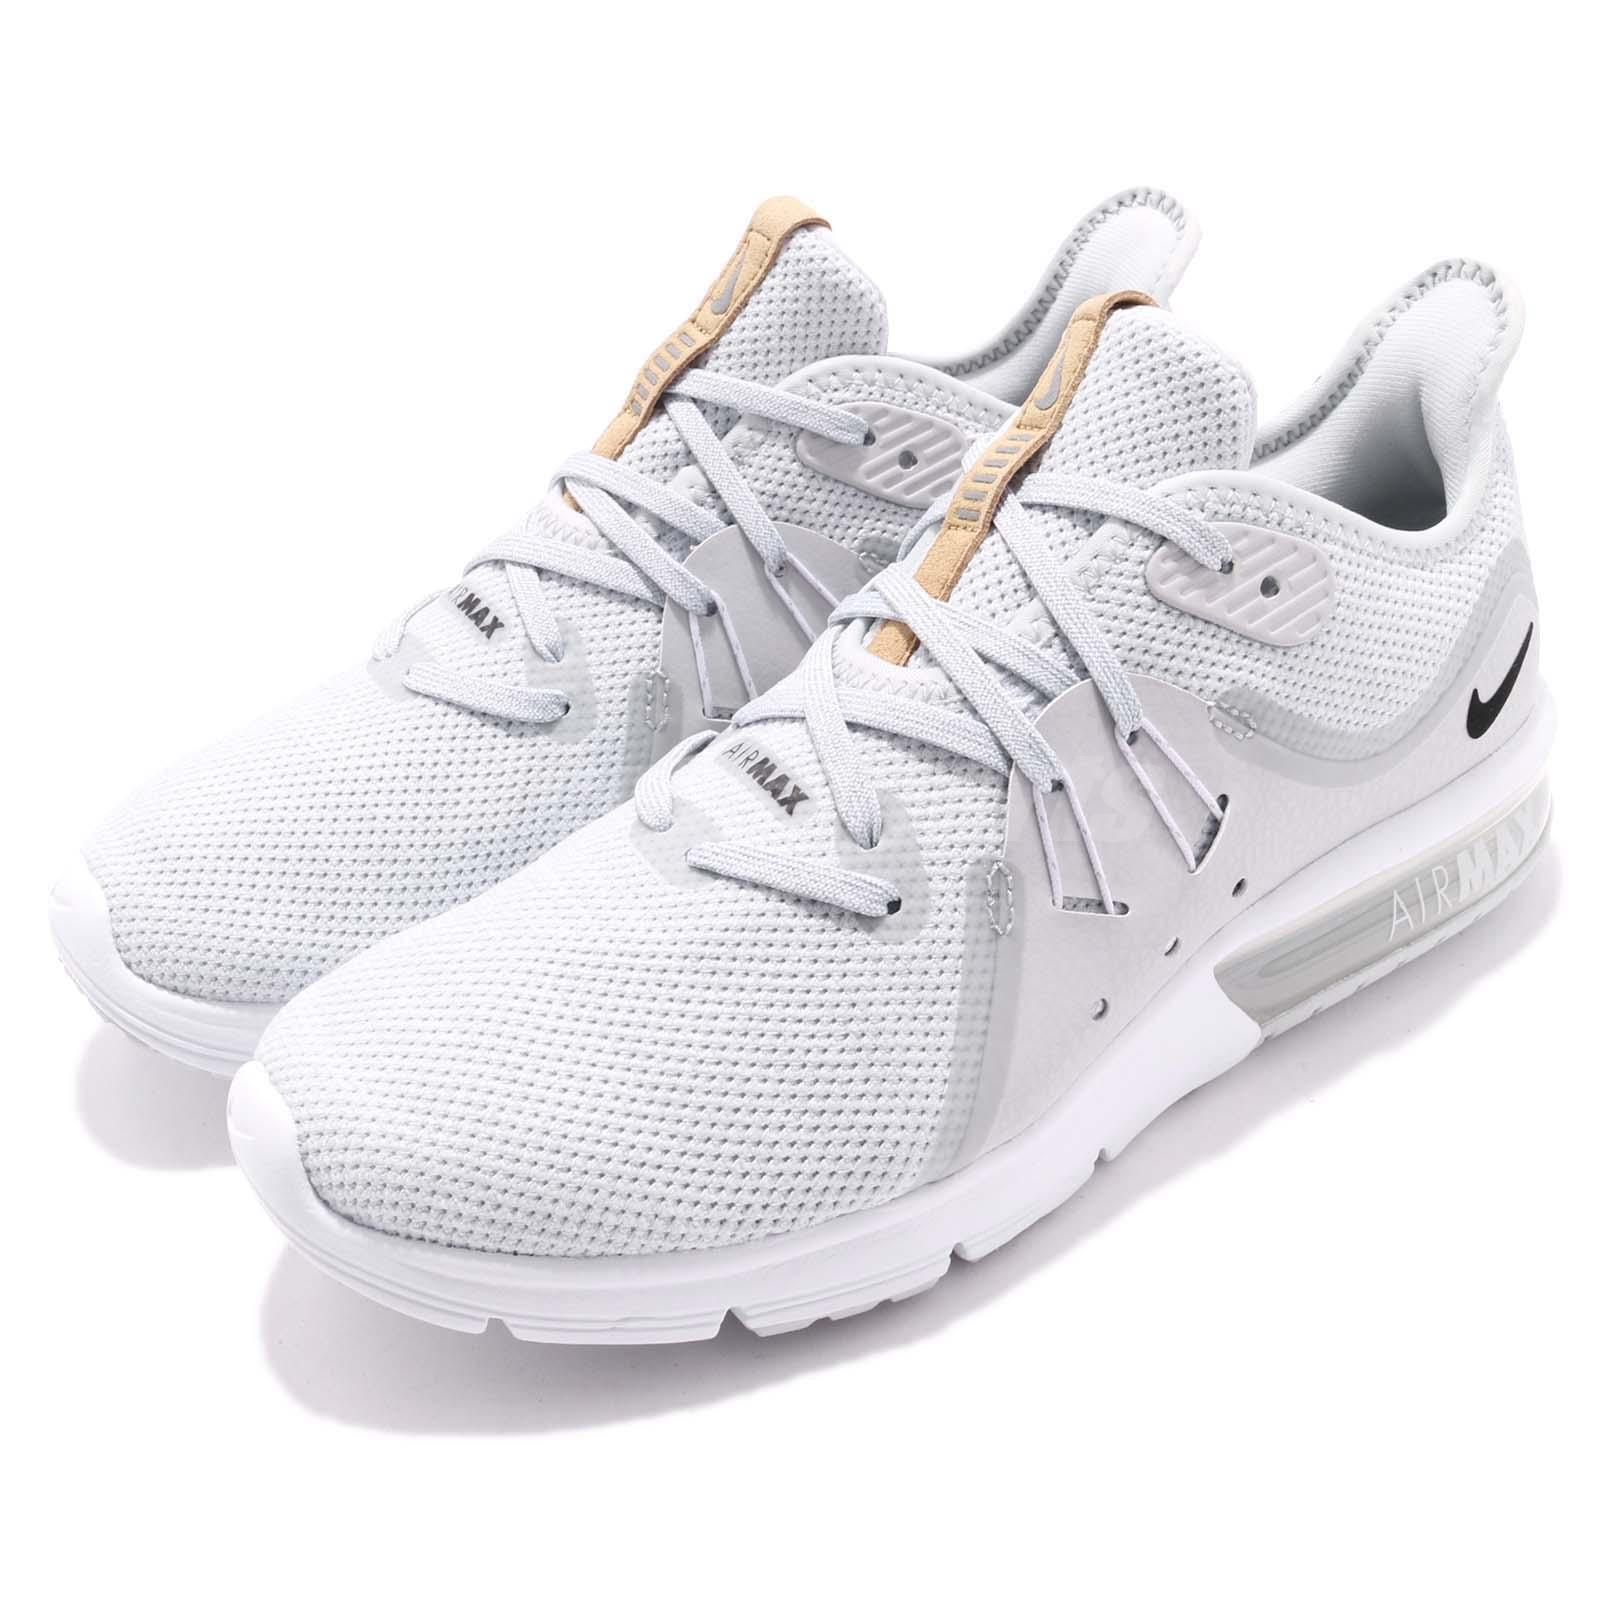 sports shoes e7b1c d8786 Details about Nike Wmns Air Max Sequent 3 III Pure Platinum White Women  Running 908993-008